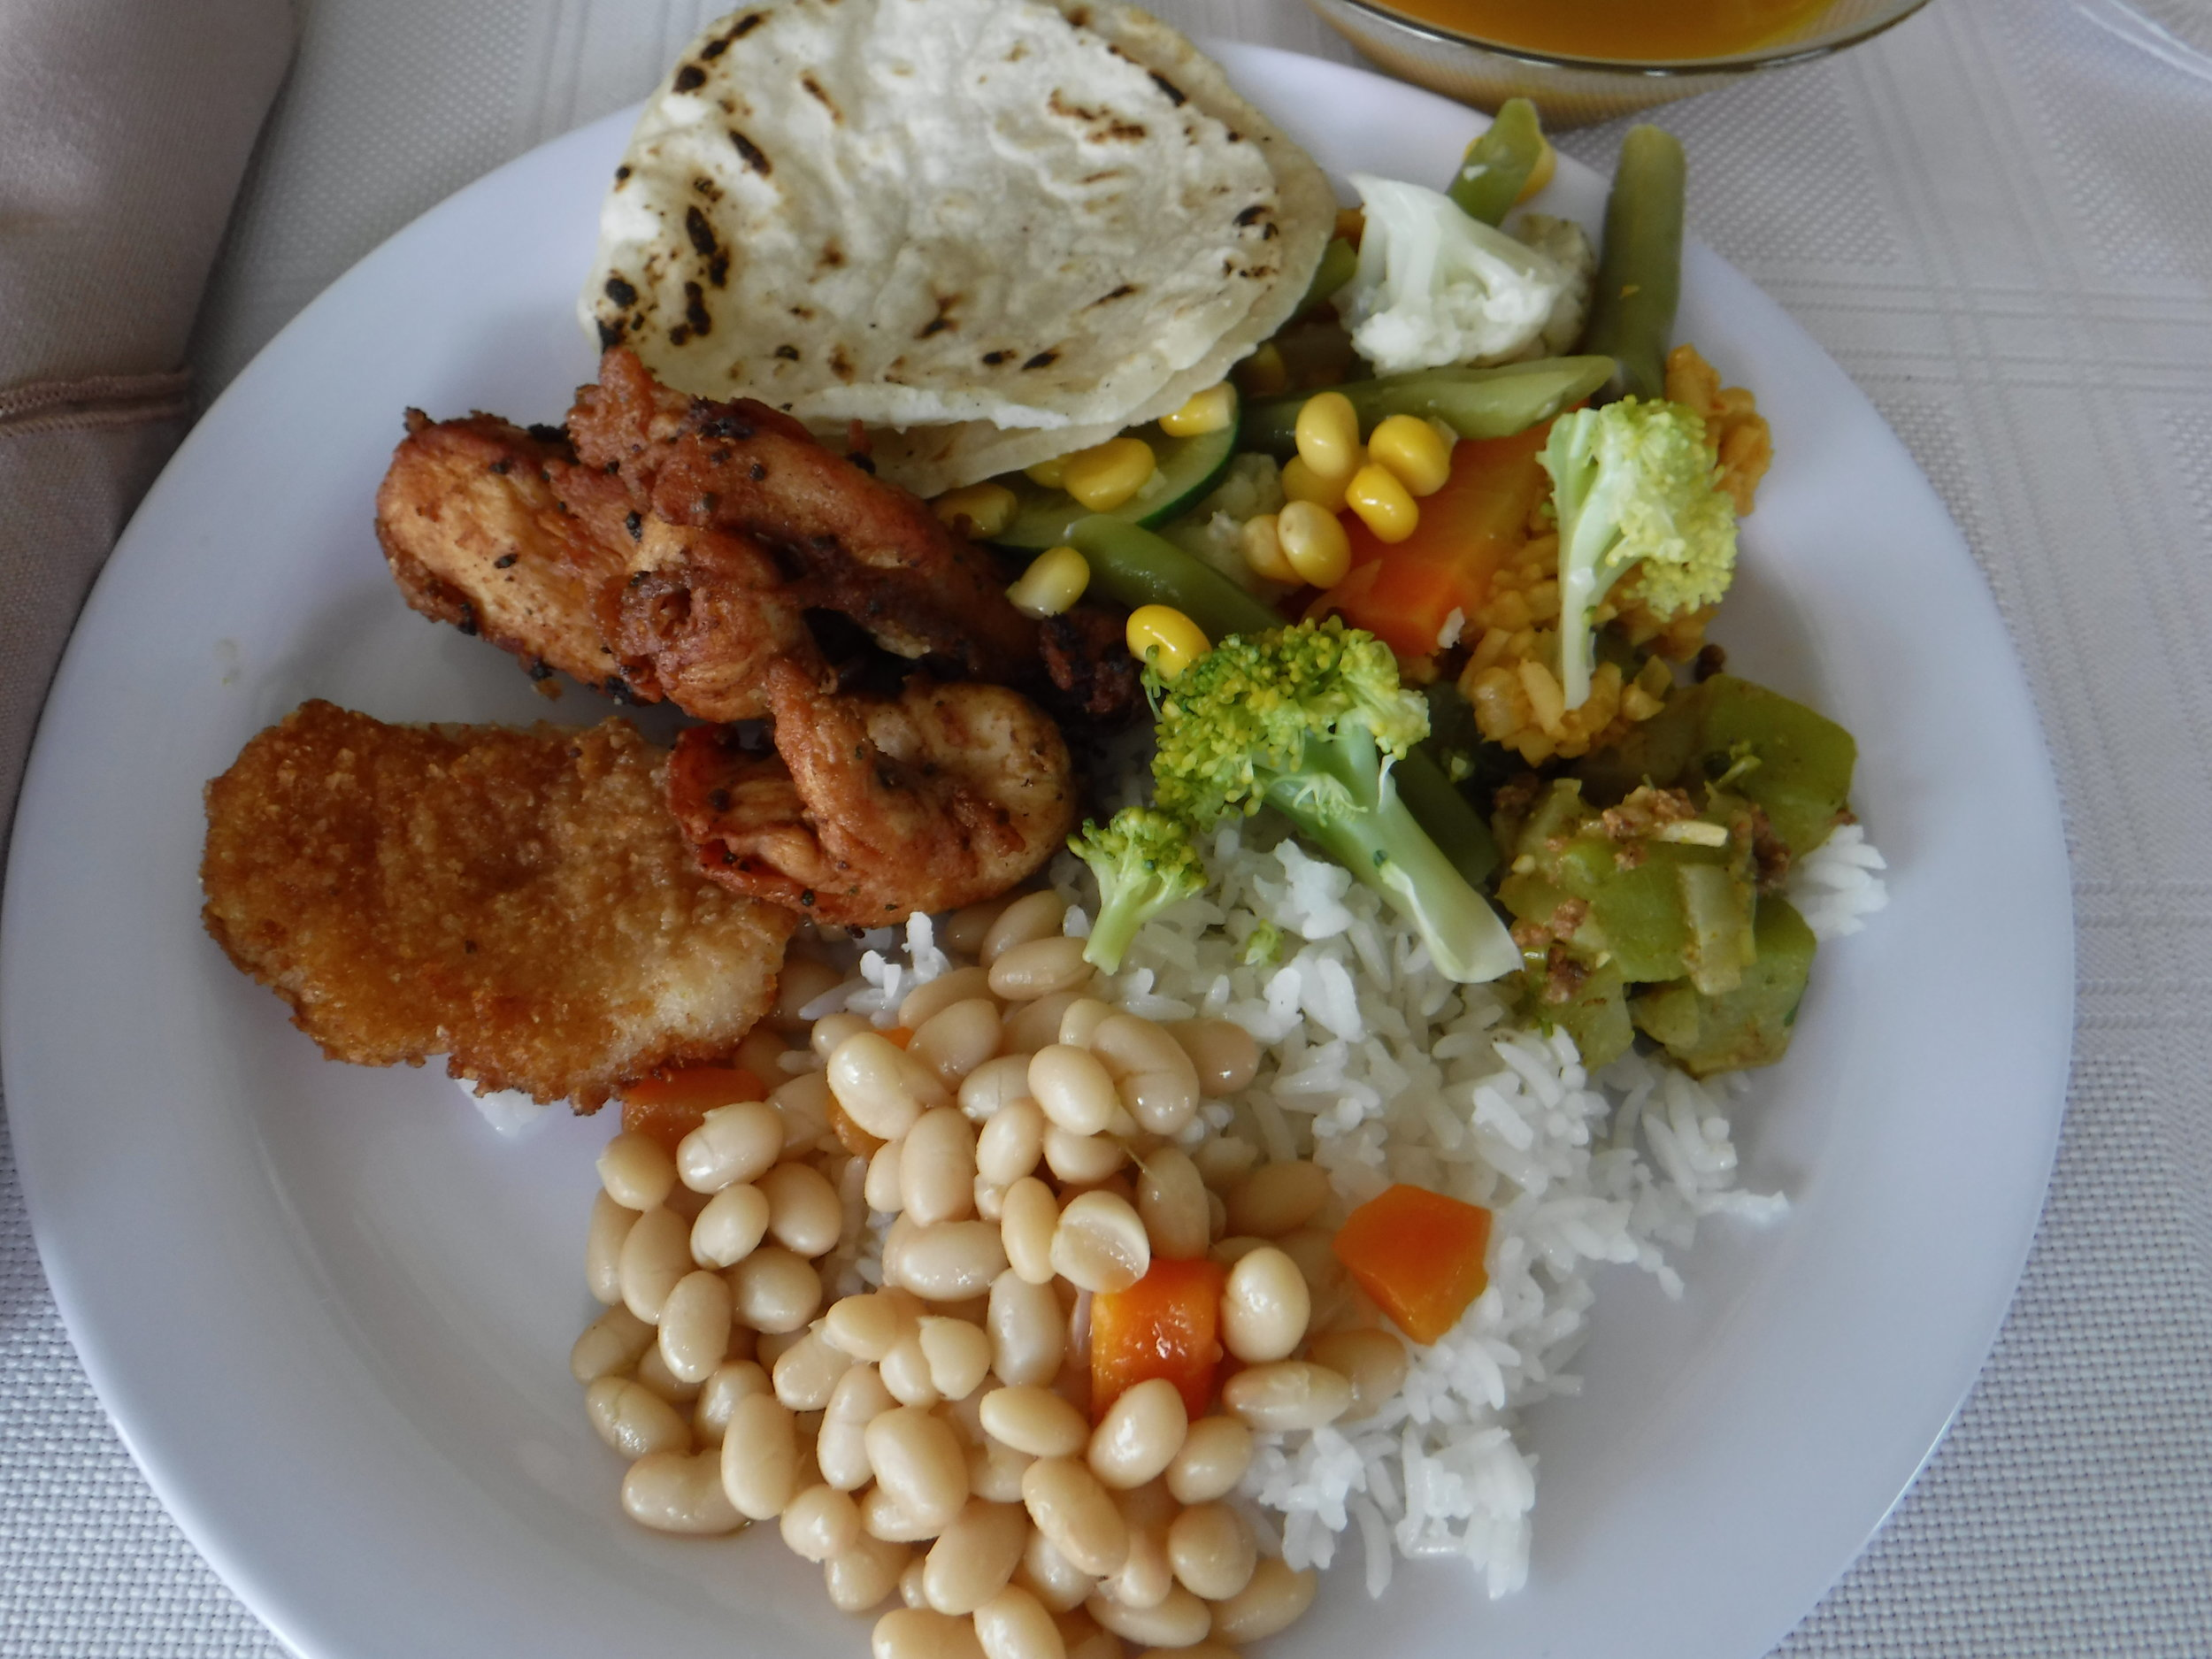 We hope you are hungry. Costa Rican food is AMAZING! It is not spicy and has just the right amount of flavor to help you clean your plate. Our Spanish Immersion guests may help prepare Authentic Costa Rican dinners for 3 nights while we are in Perez Zeledon. -